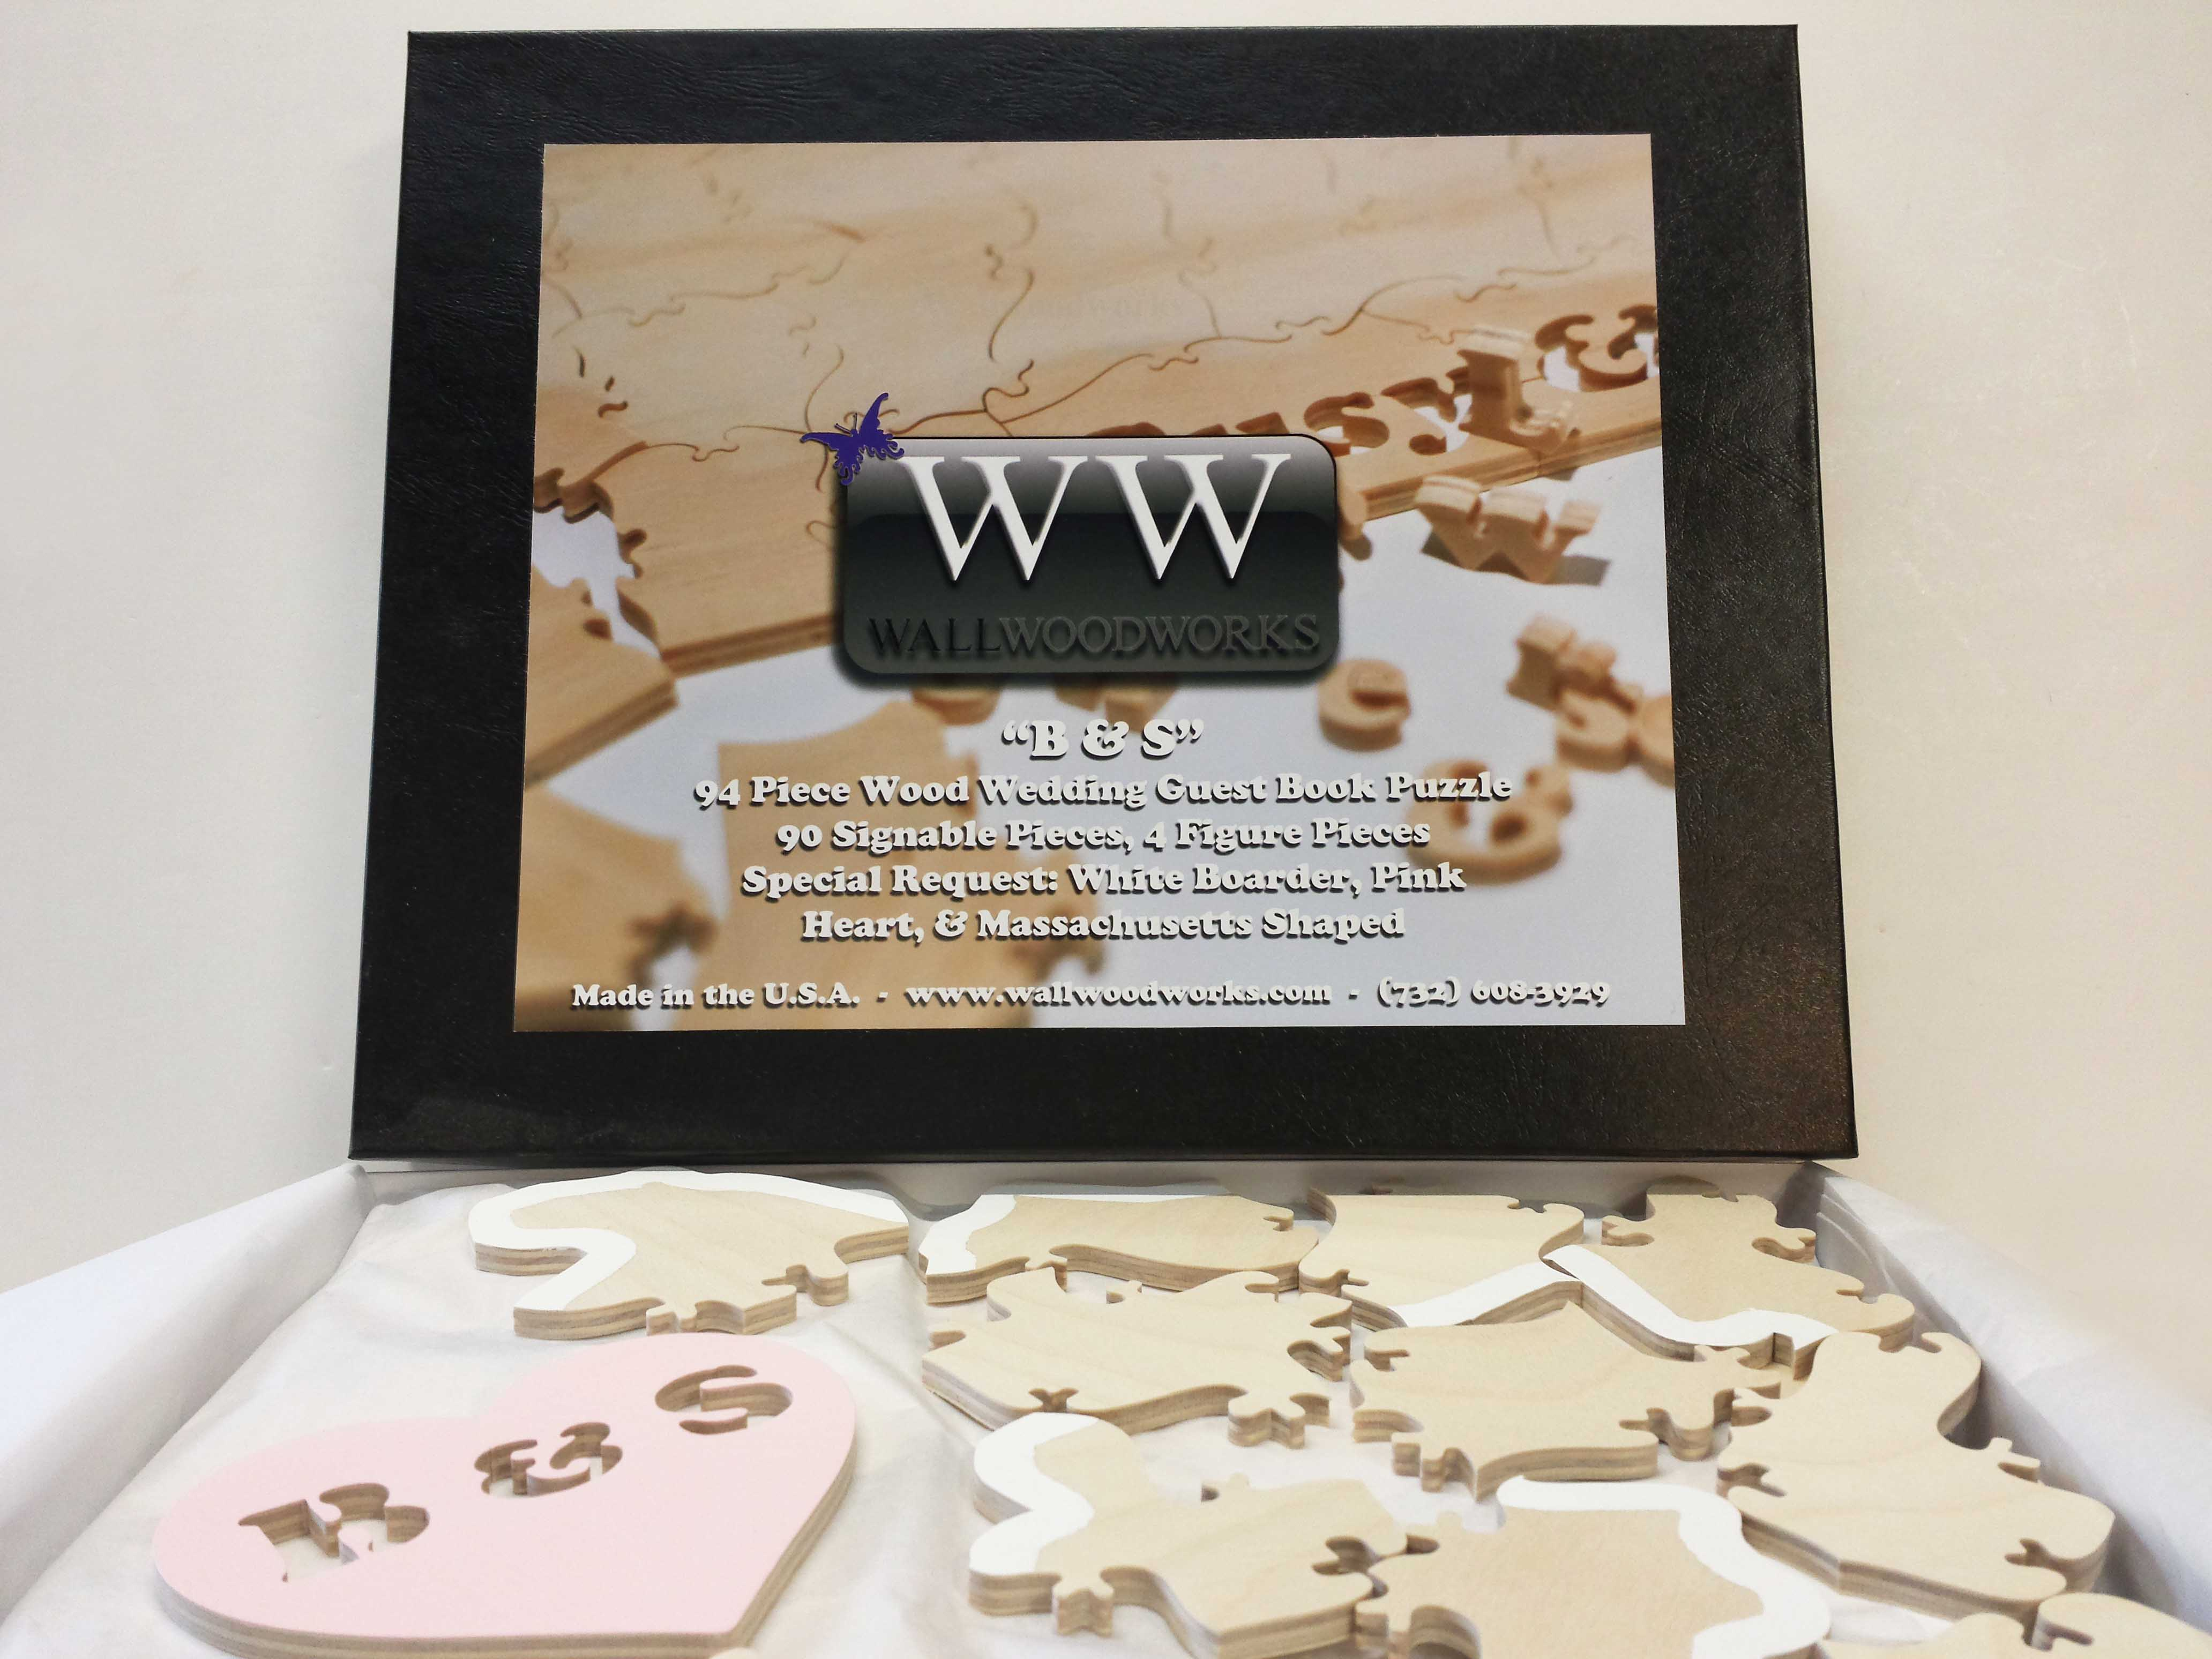 natural state wedding puzzle guest book wall woodworks